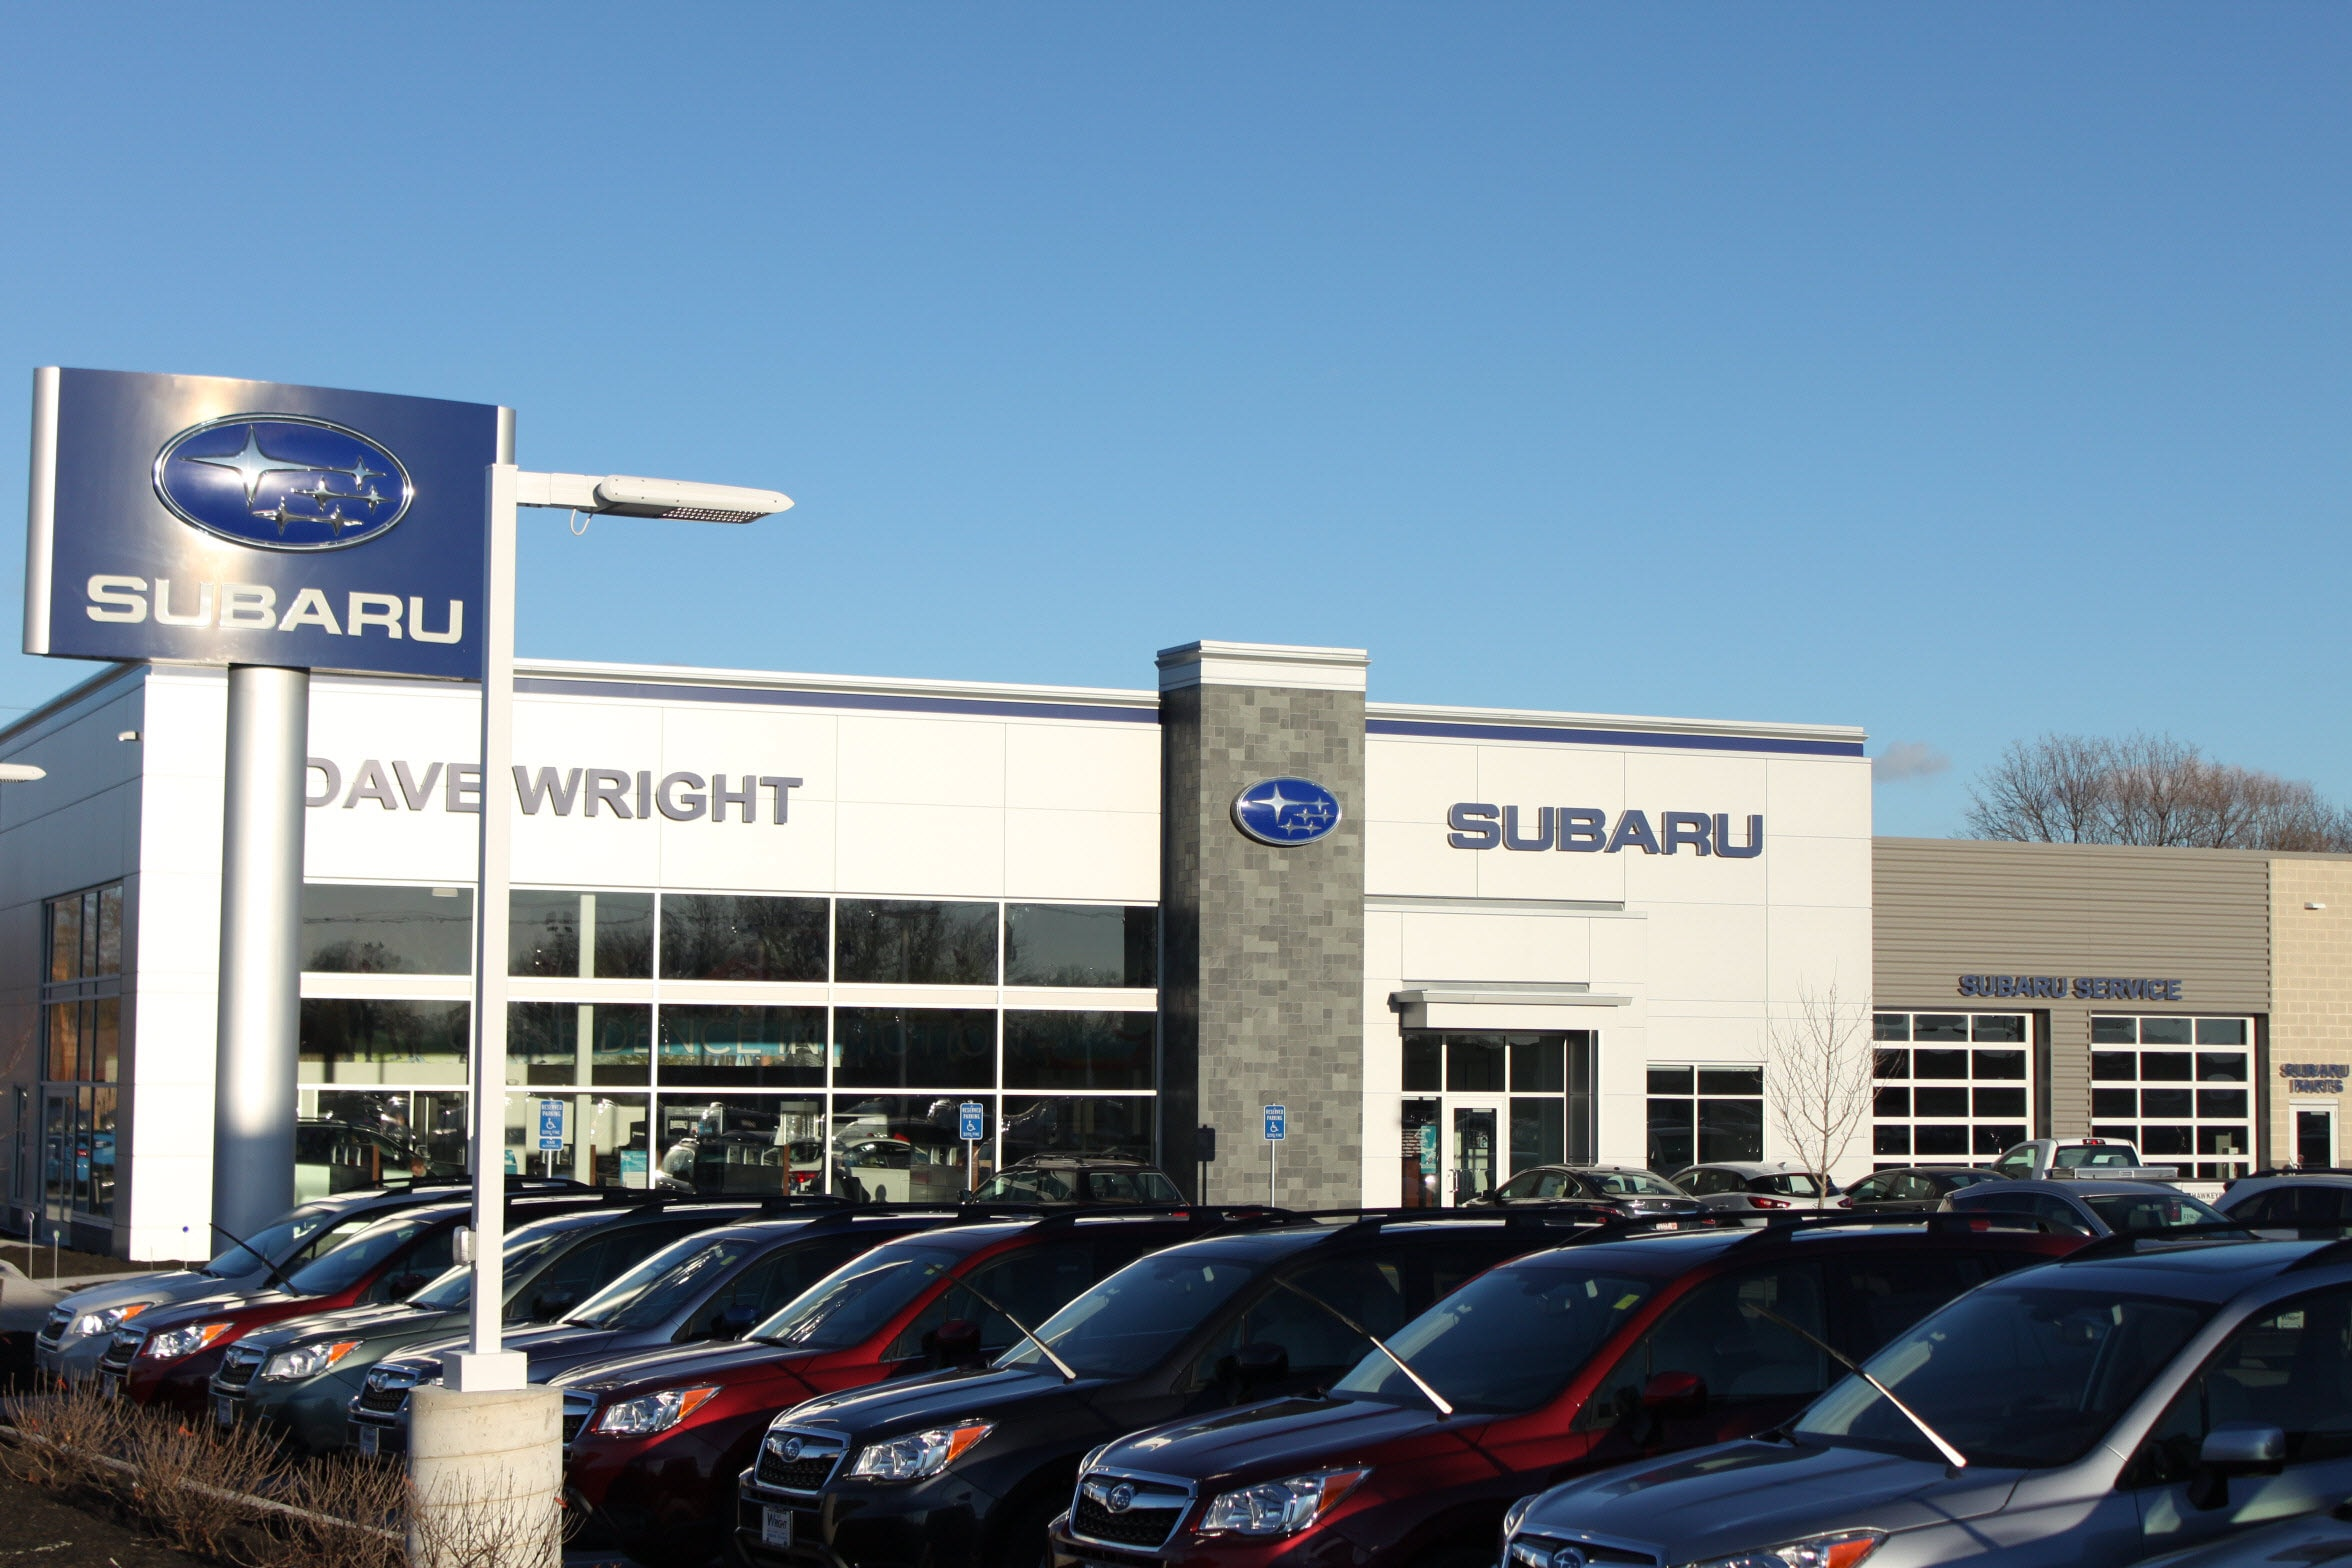 Welcome to dave wright subaru wright cars wright place wright price